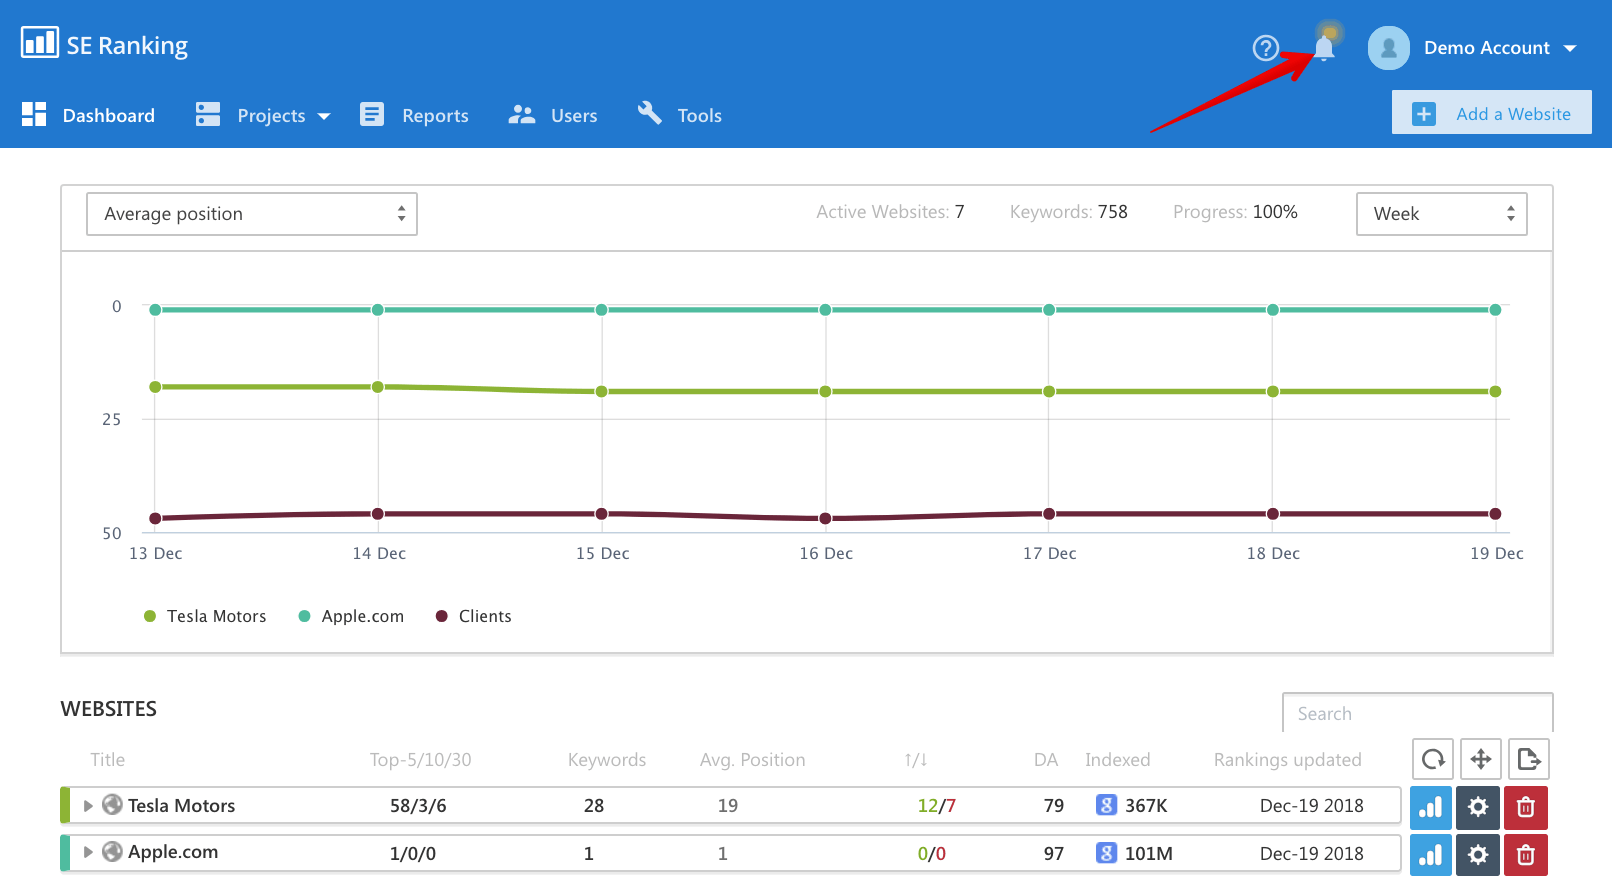 Notification Center in se ranking